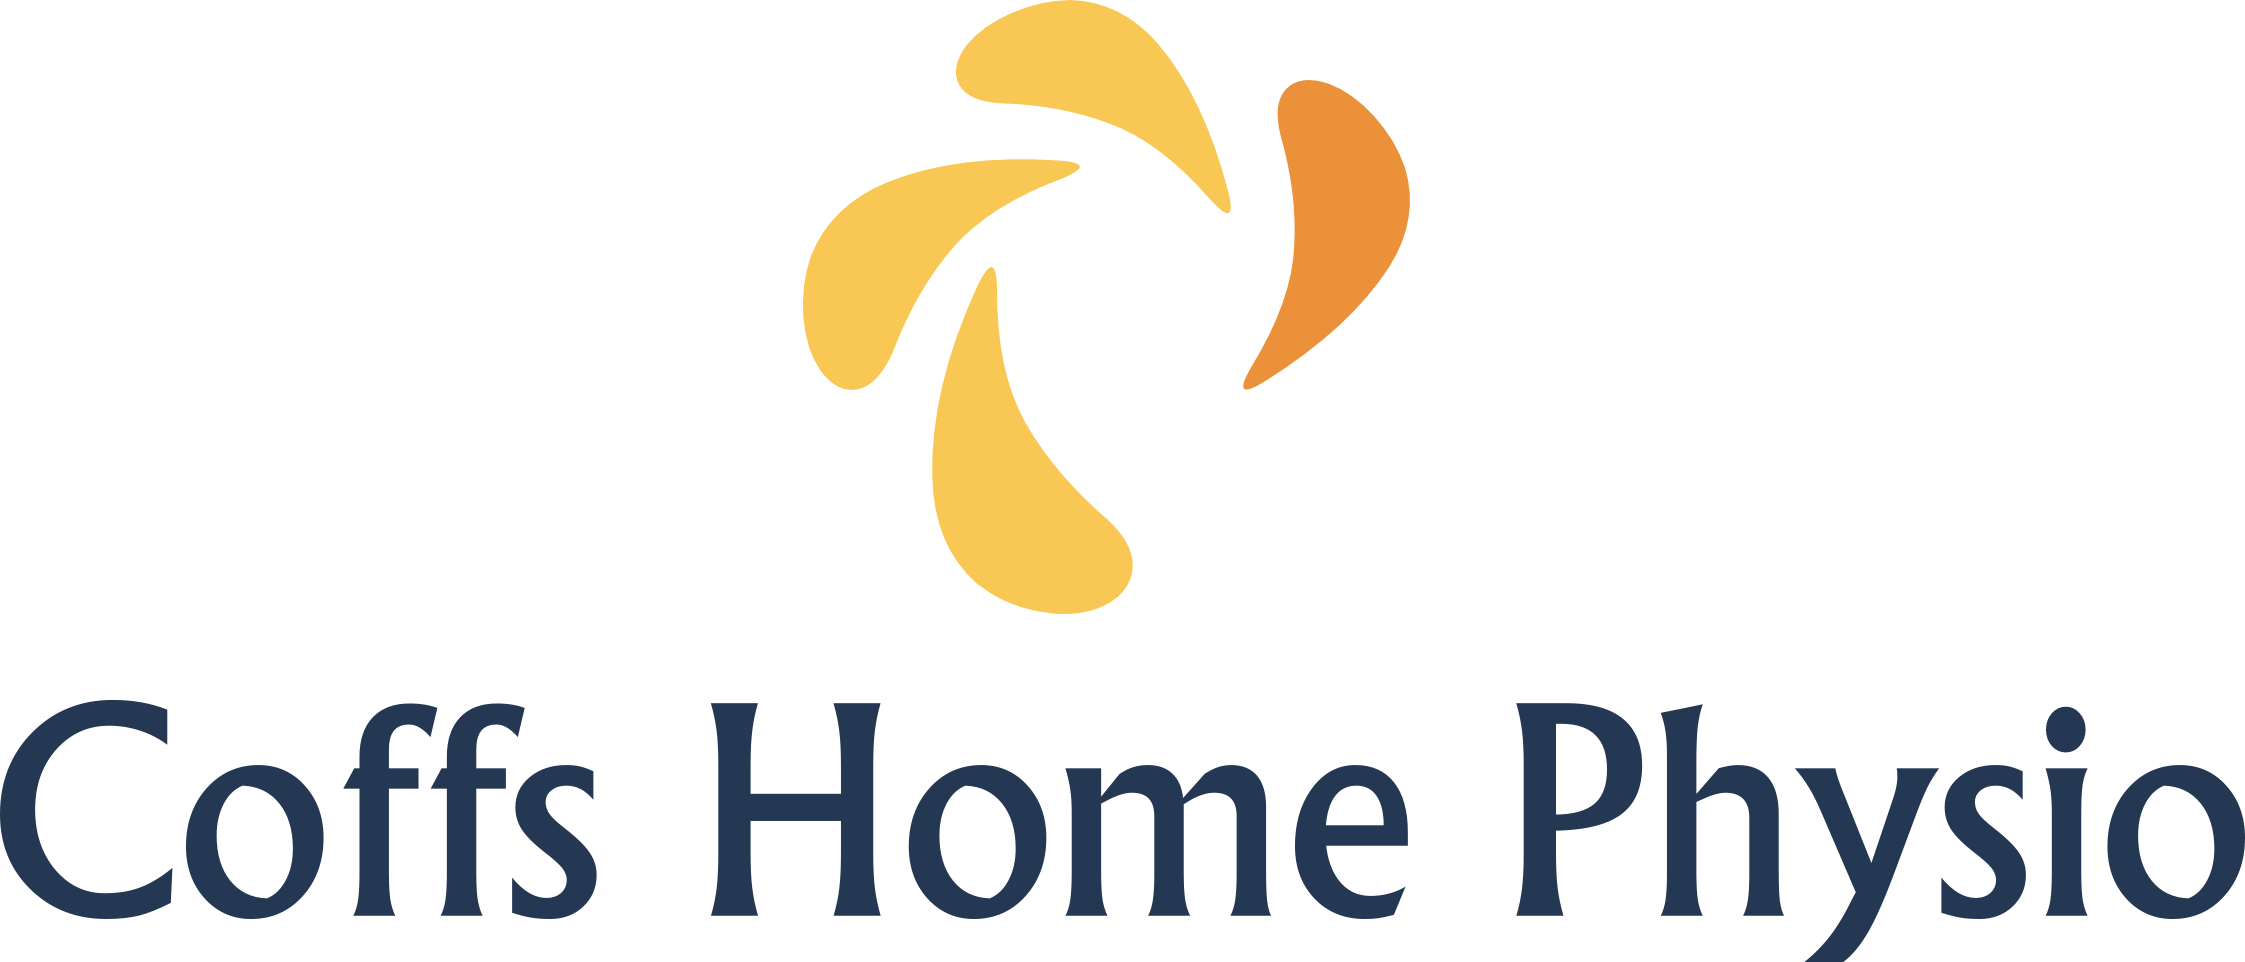 Coffs Home Physio Logo